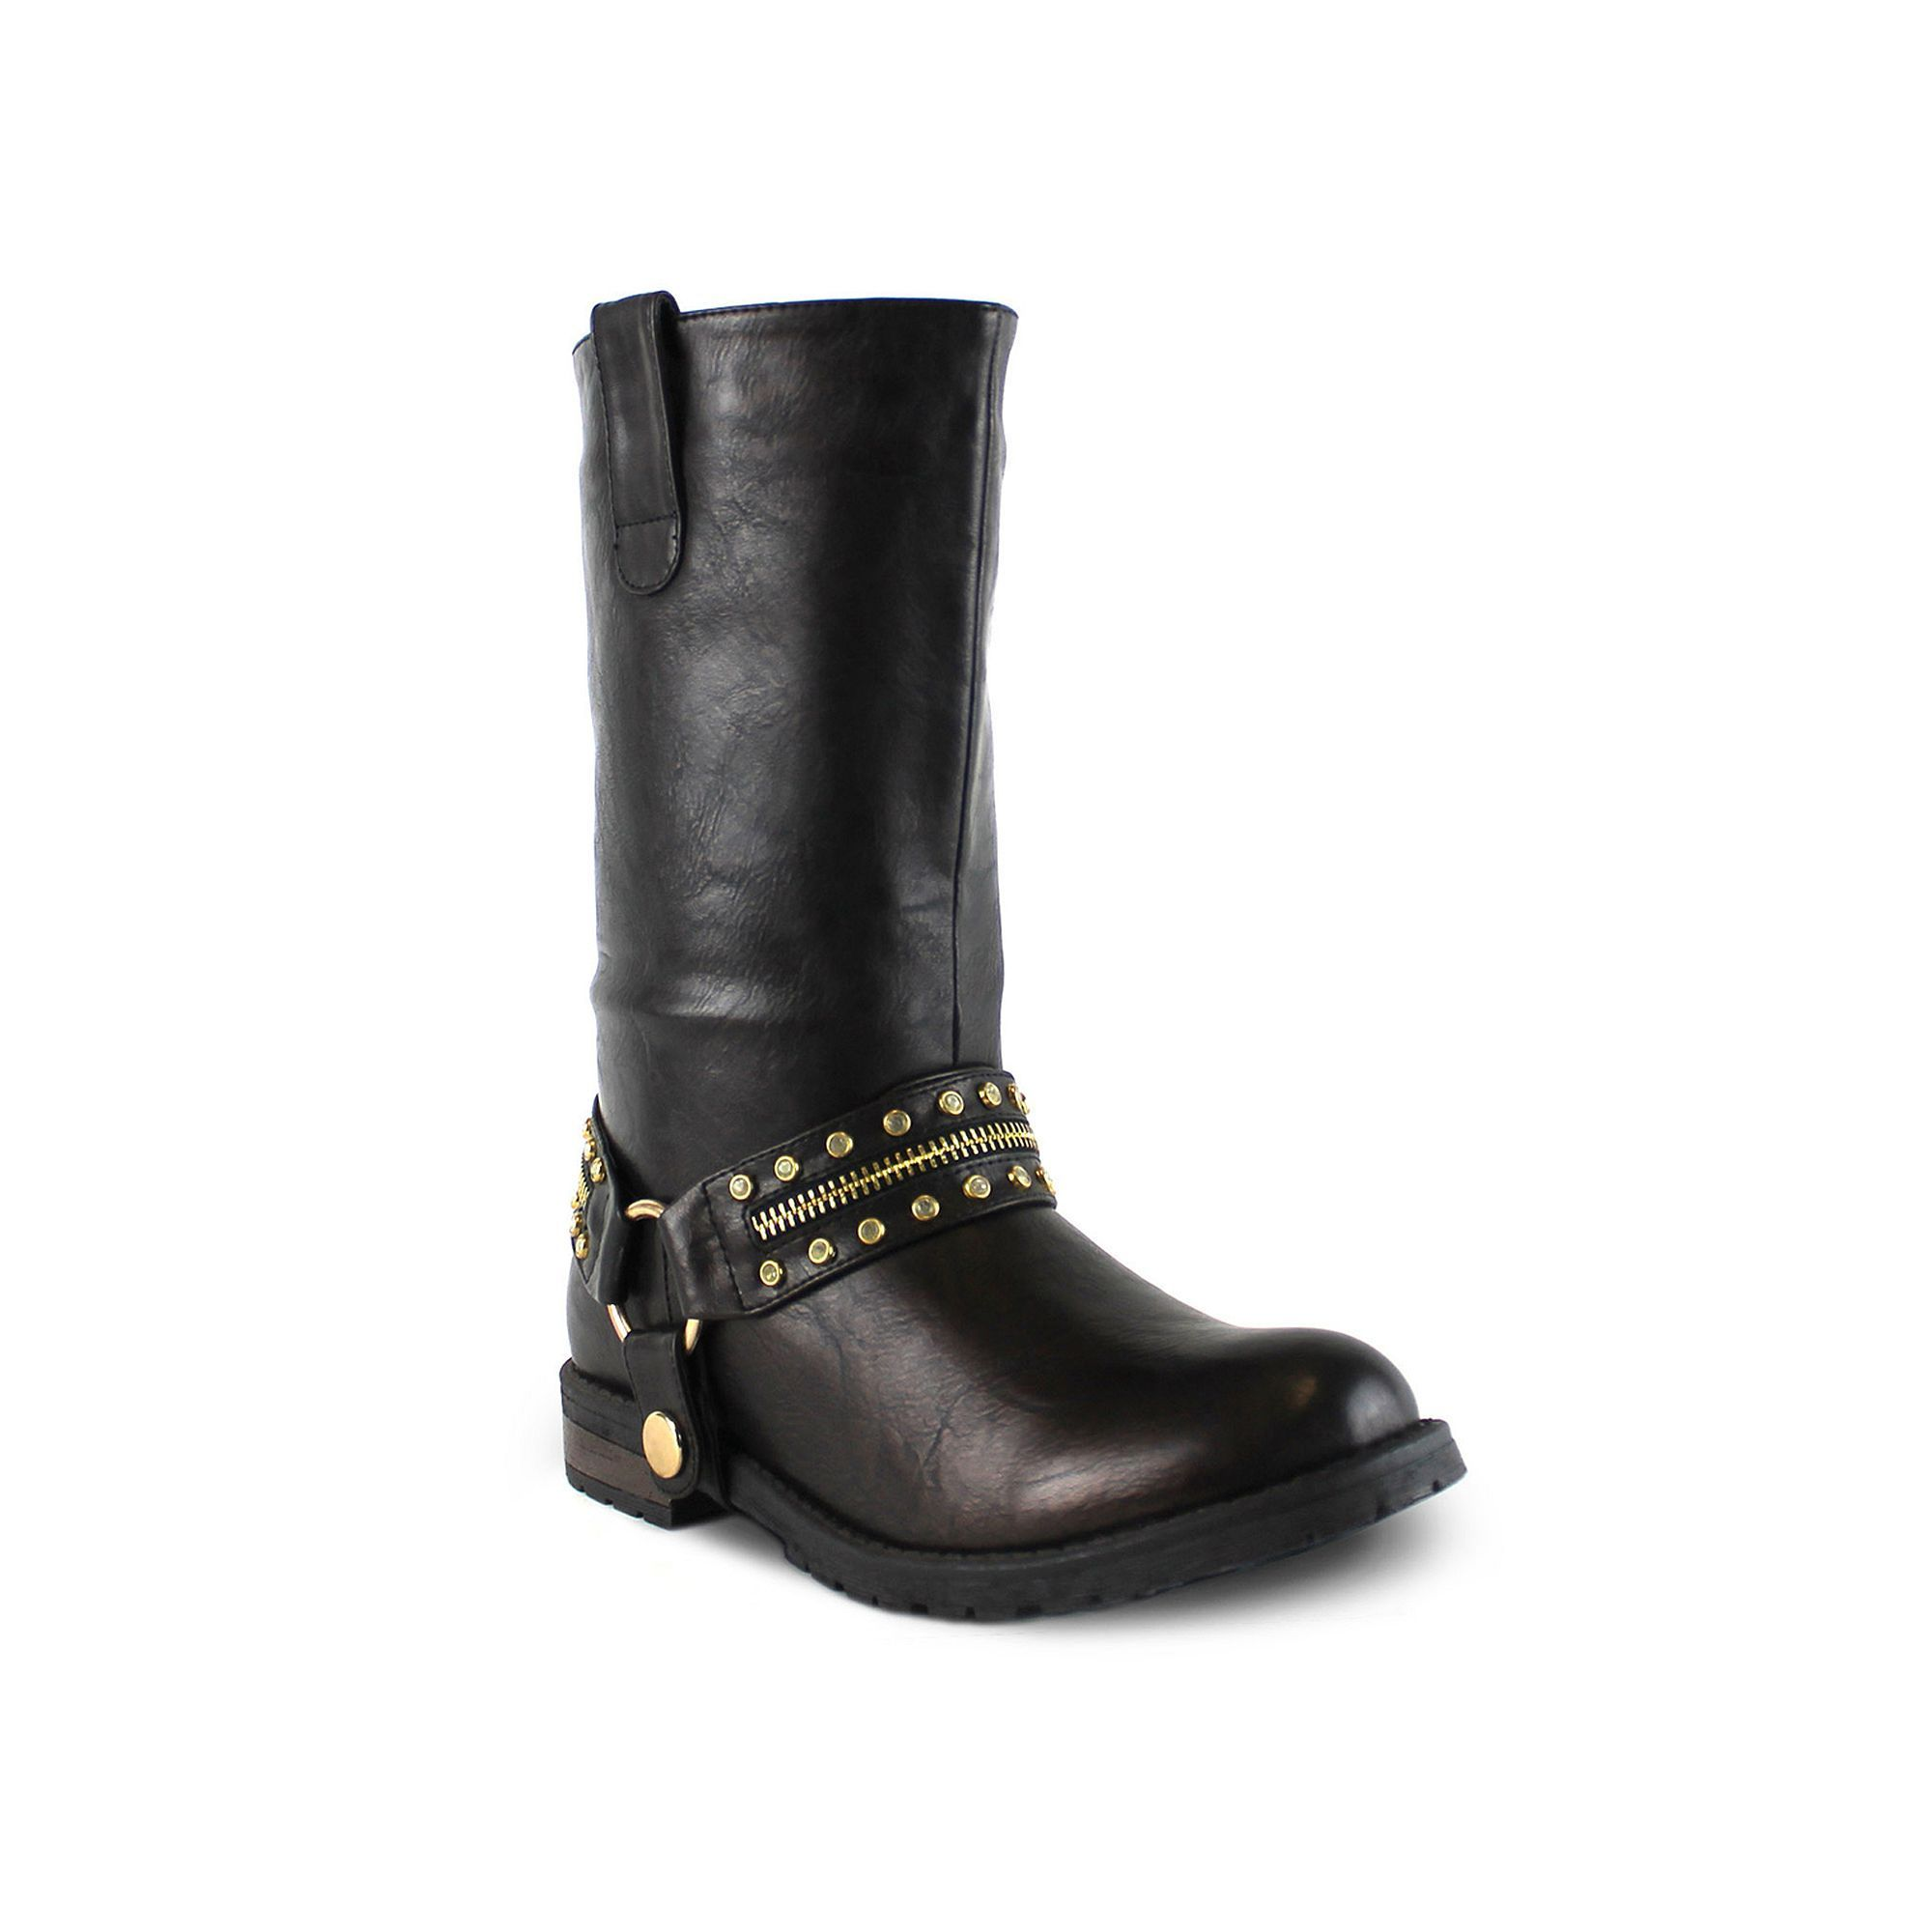 buy cheap footaction shop cheap price Olivia Miller Audubon Women's ... Mid-Calf Motorcycle Boots cheap sale genuine where to buy low price Znv7a8BPp